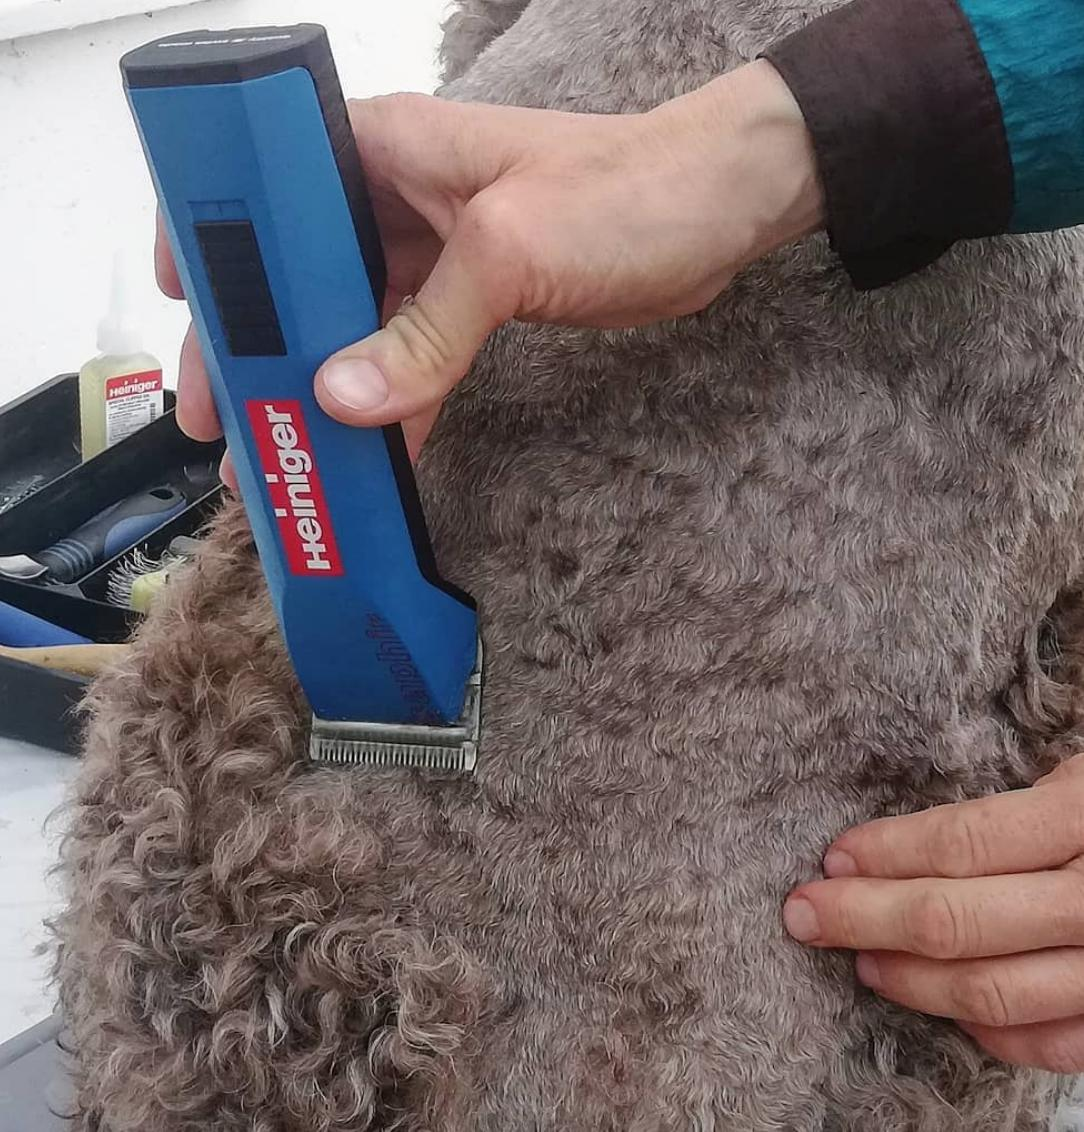 The Heiniger Saphir working its magic on @lagotto15 - a fantastic clipper for dog grooming, and nice and quiet/low vibrations too     https:// buff.ly/2WHCI7l      #doggrooming #lagotto #heiniger #heinigersaphir #dogclipper #doggroomer #dogclipping #doggroomingsalon #clippersharp<br>http://pic.twitter.com/v5Azzcpq51